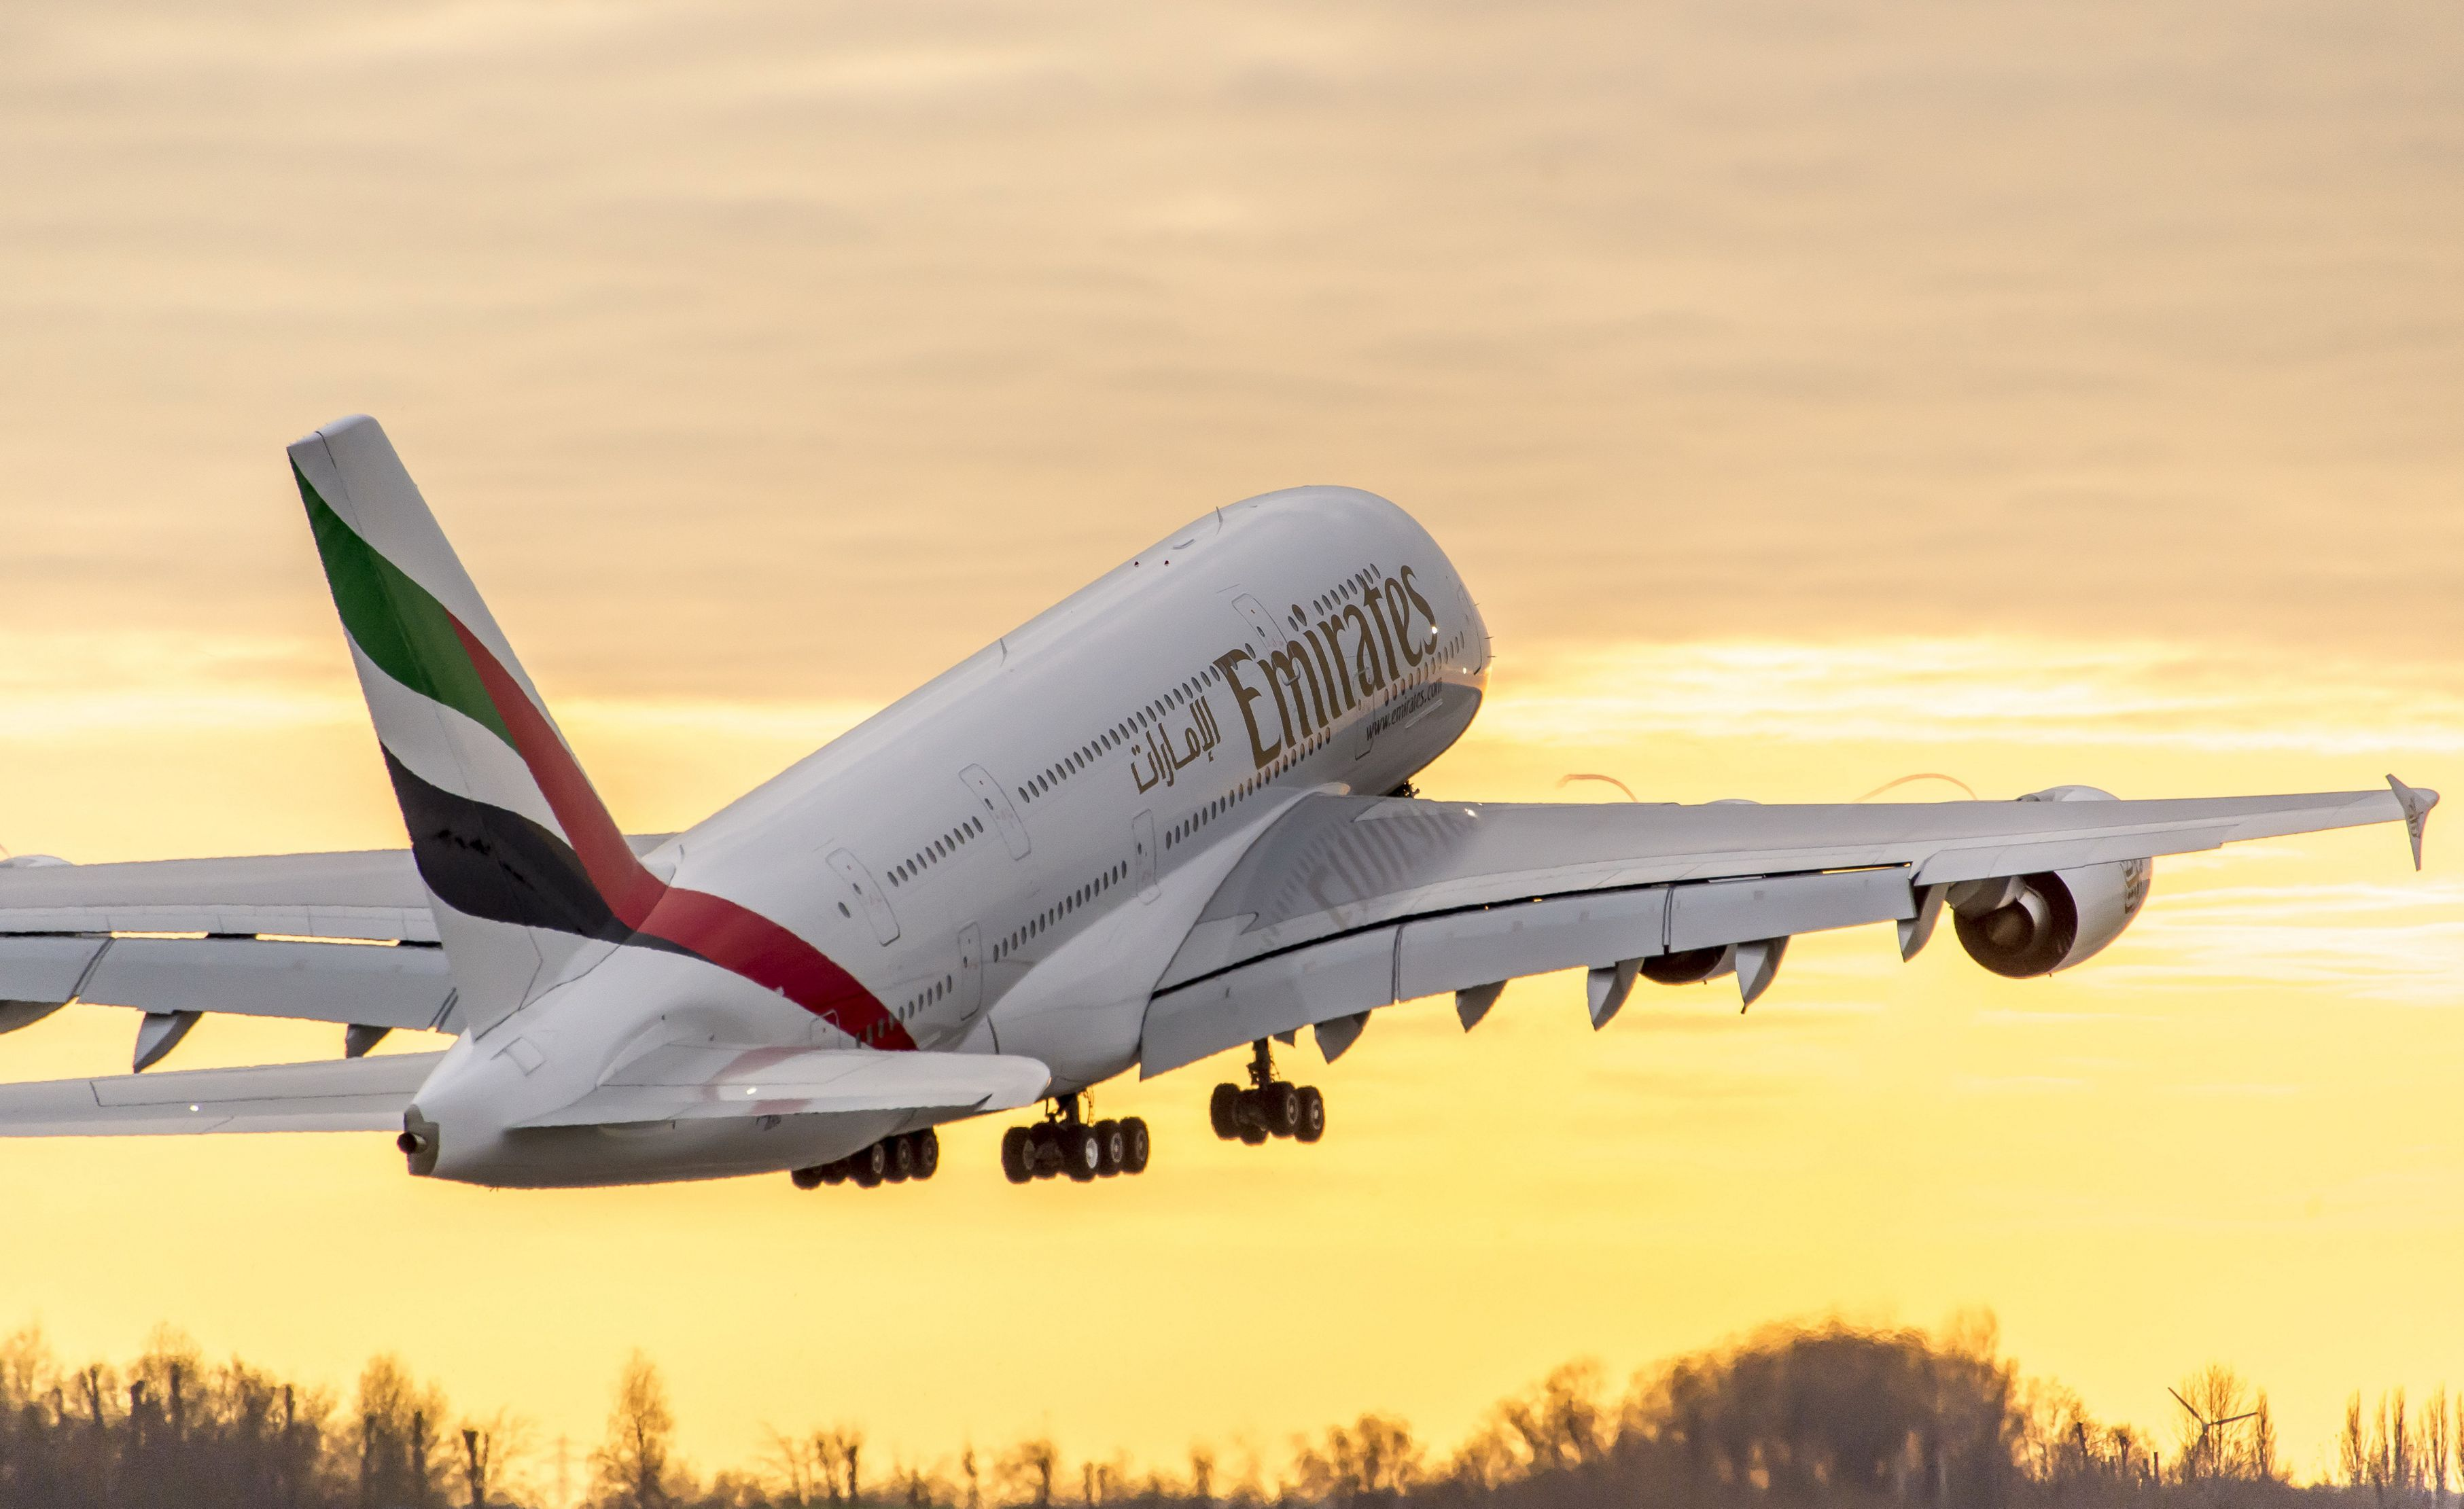 Airbus will discontinue production of four-engine A380